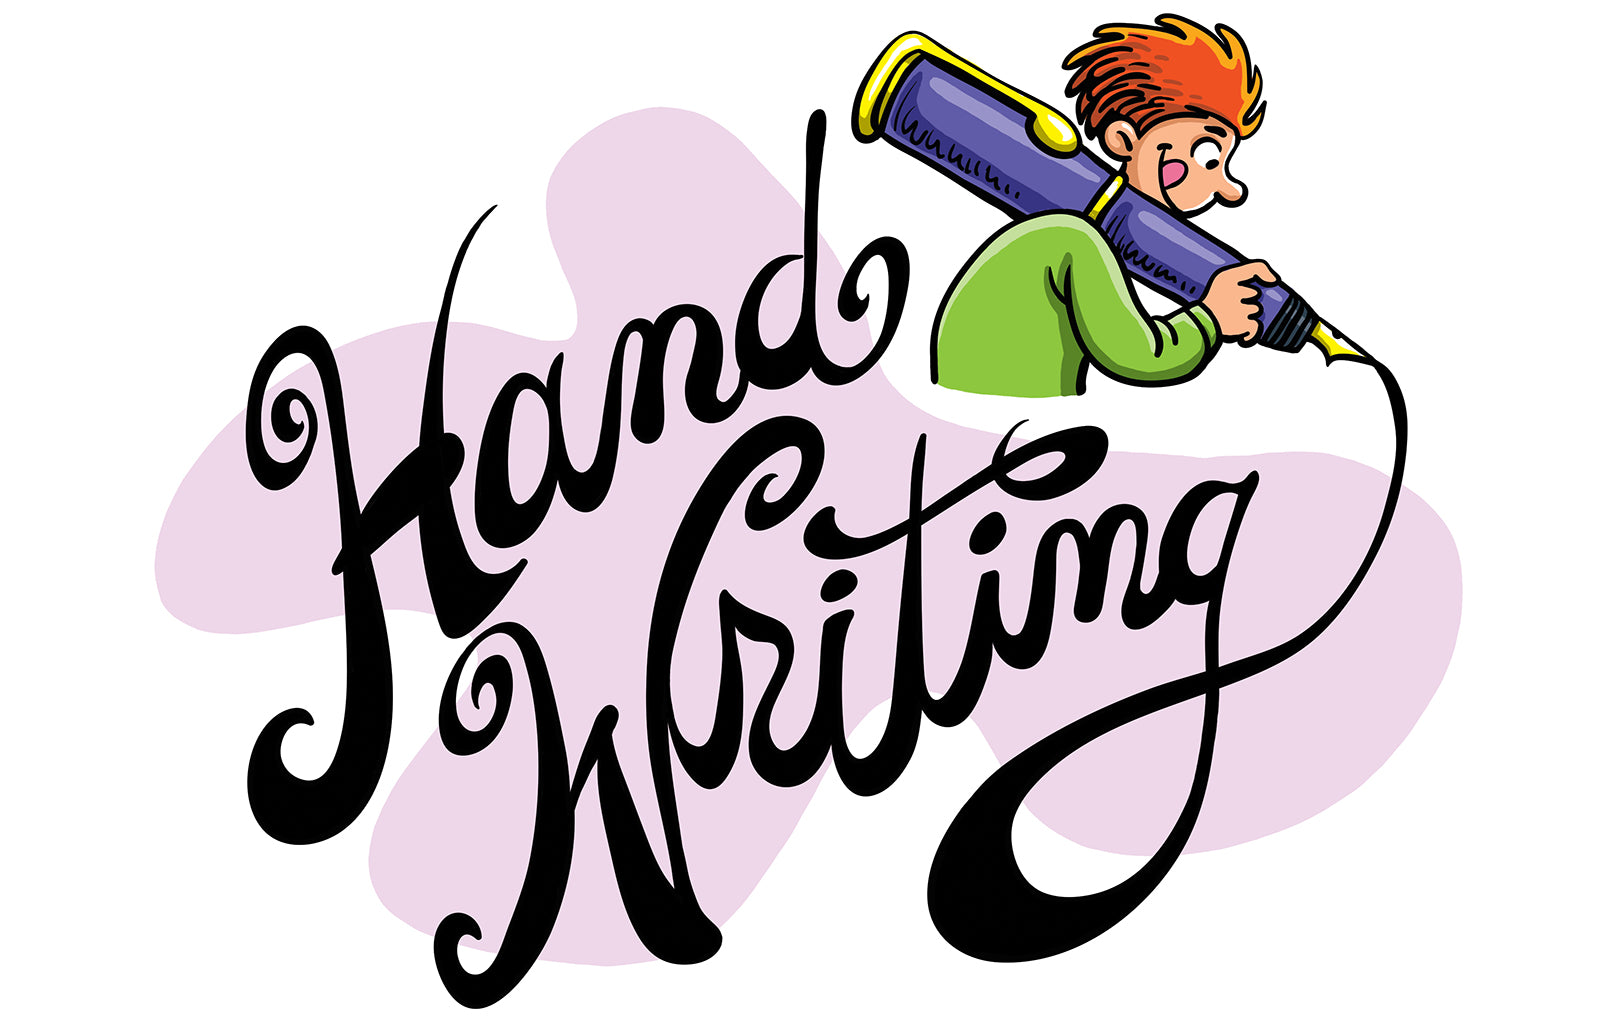 Handwriting Clipart | Free download best Handwriting Clipart on ...